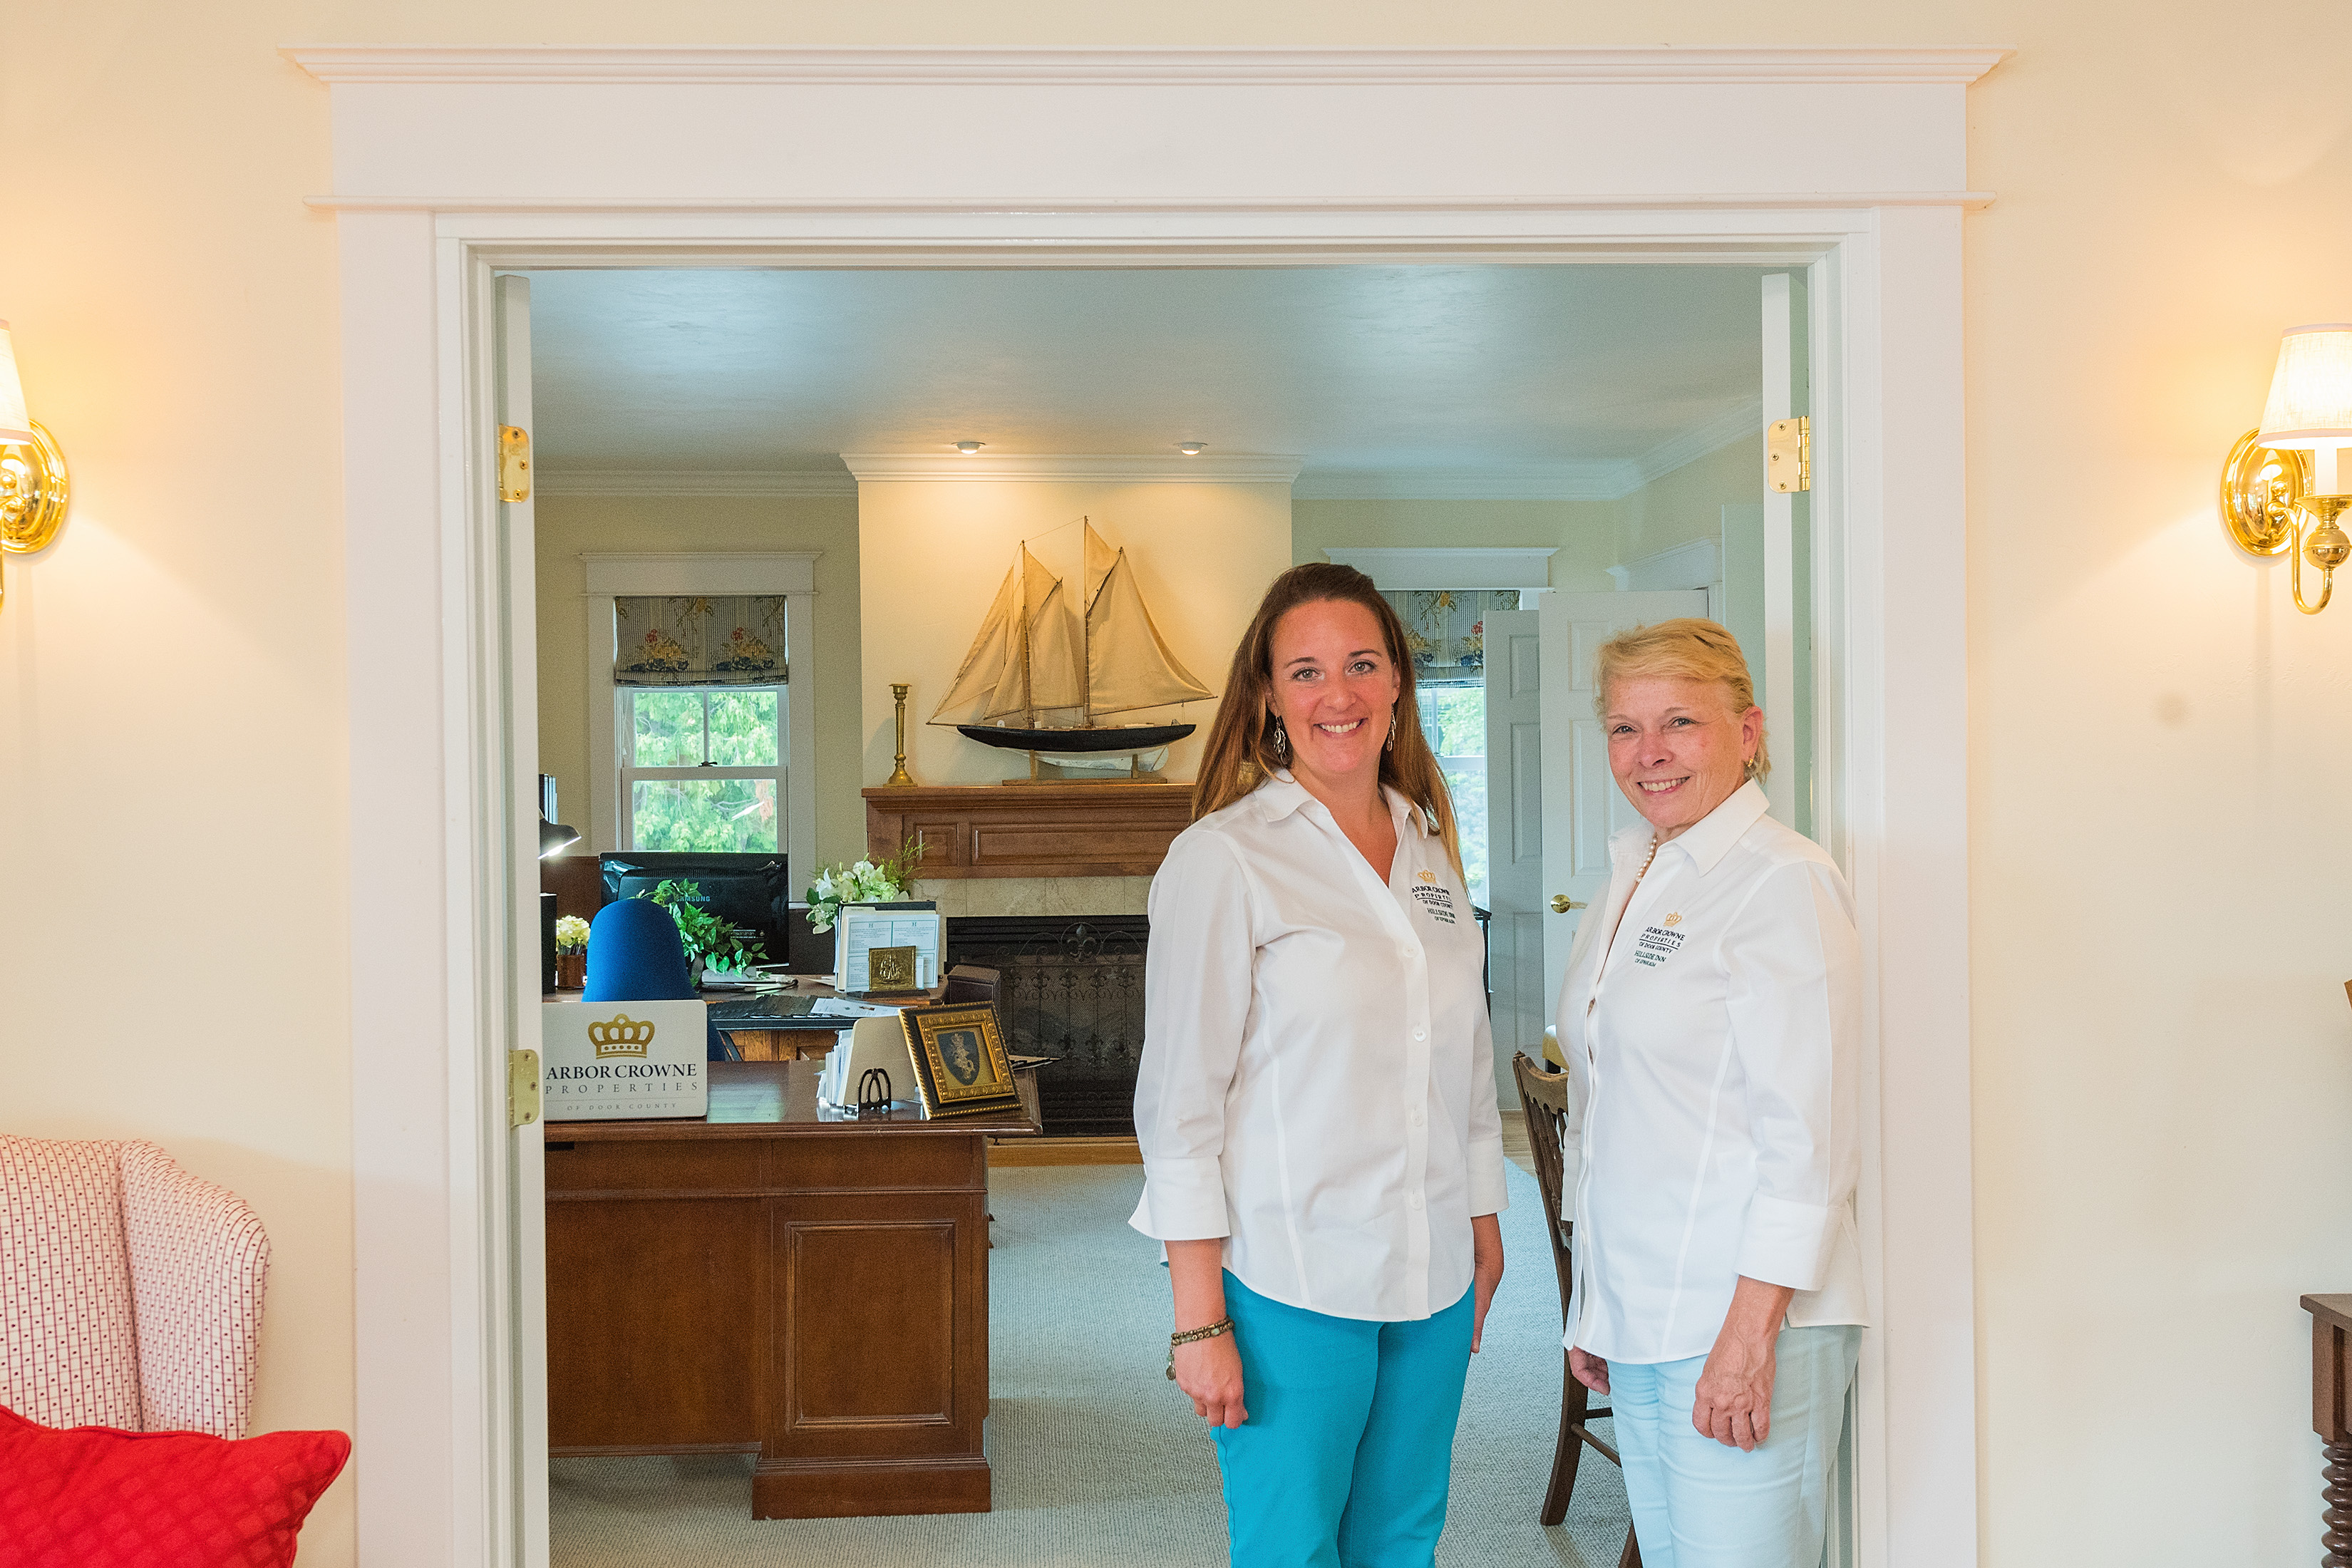 (Left to right) Carrie Counihan and Diane Taillon work at the Hillside Inn's renovated office space for Taillon's other business, Arbor Crowne Properties. Photo by Len Villano.